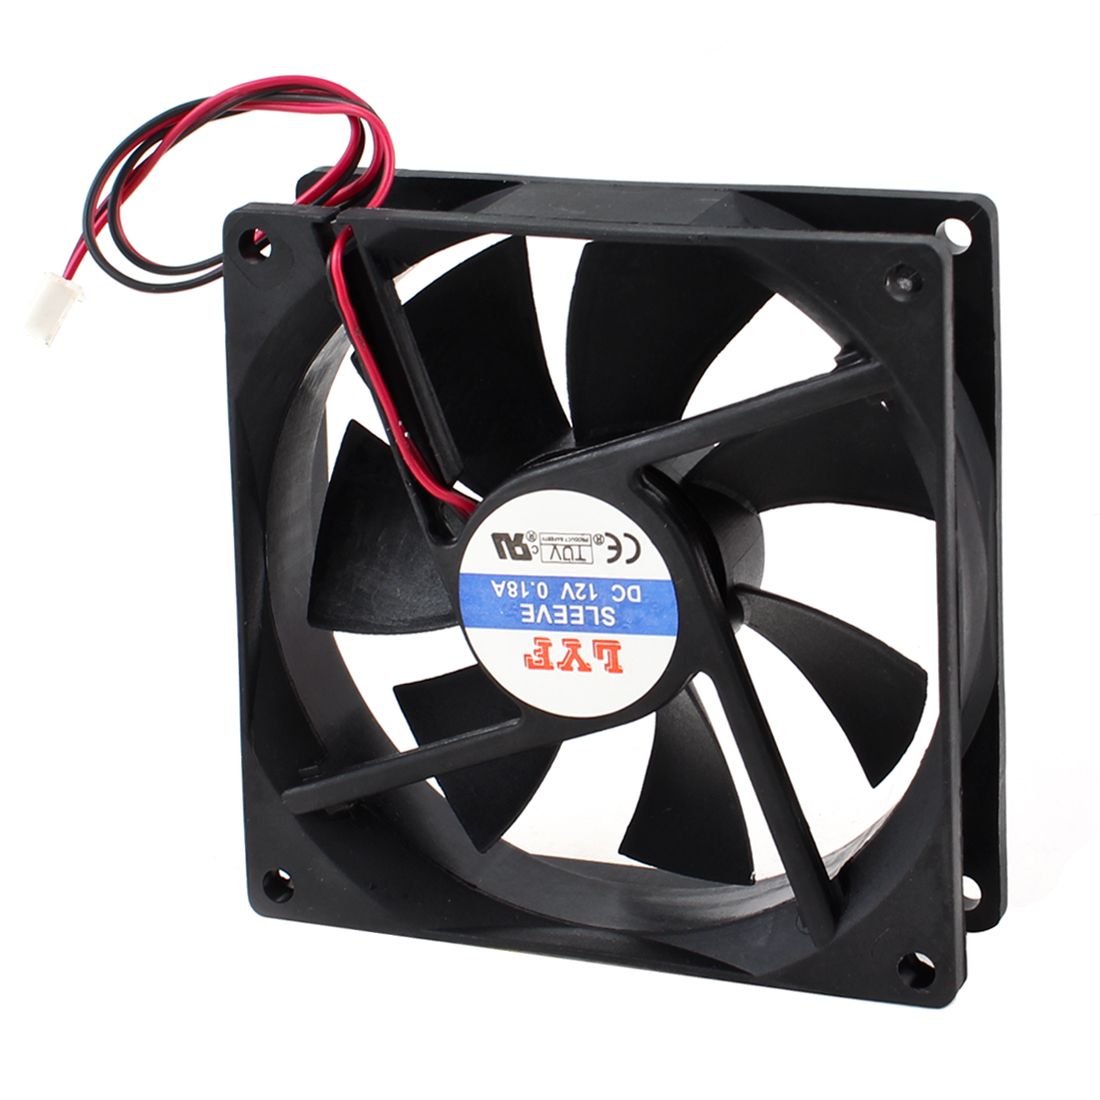 90mmx90mm Sleeve Bearing Connector Cooling Fan Black for PC Computer Case